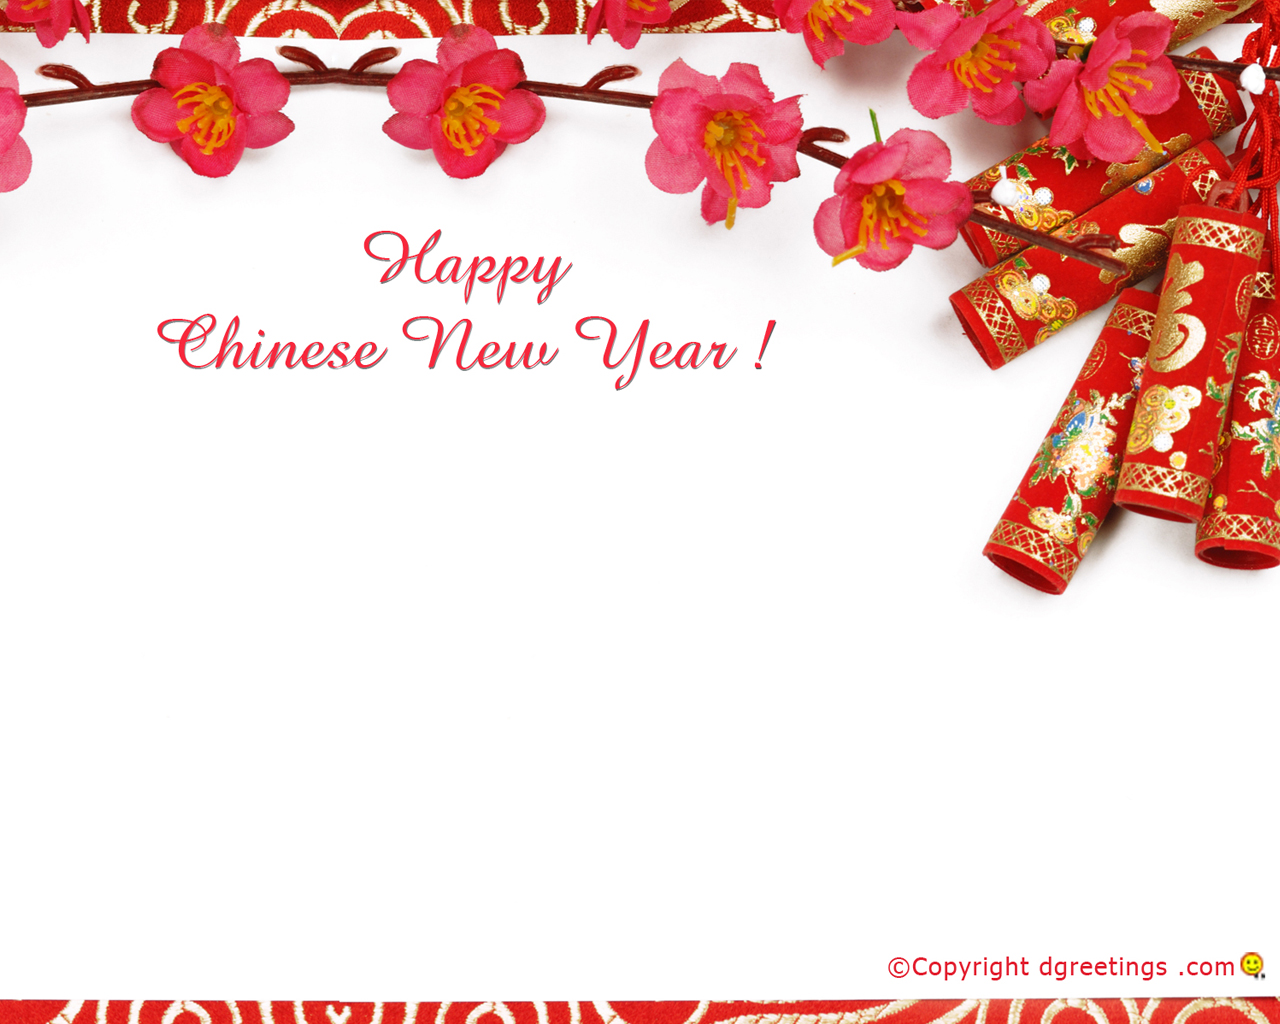 Chinese New Year Wallpaper 1280x1024